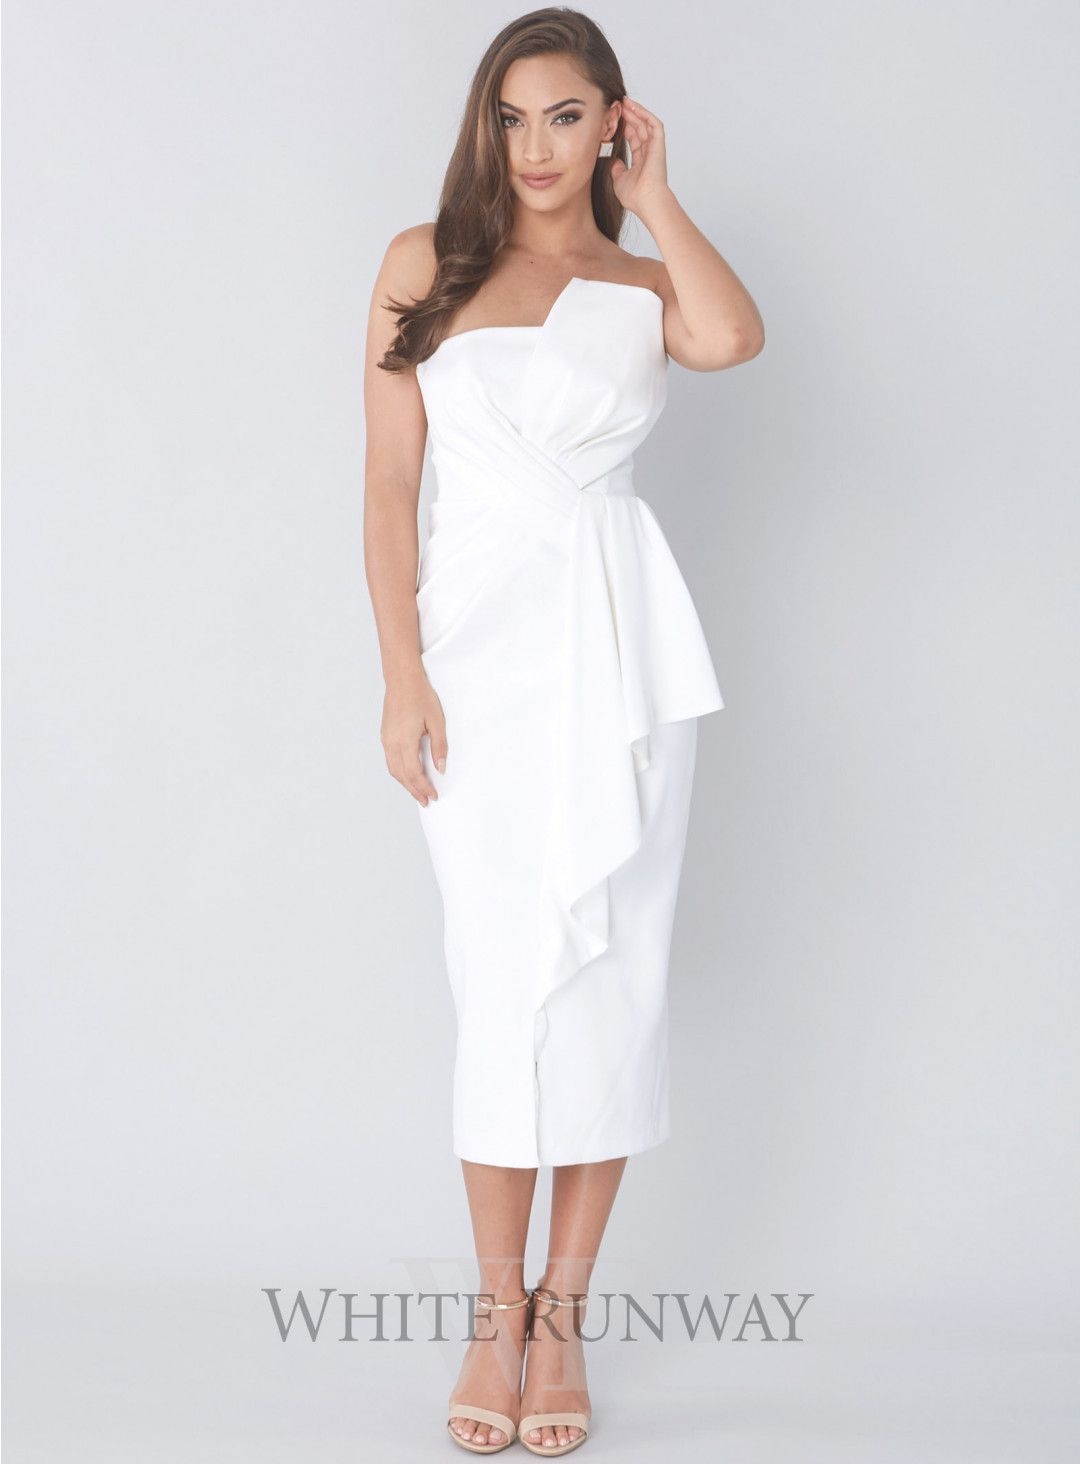 Stellina Midi Dress. A gorgeous cocktail length dress by Australian  designer Samantha Rose. A strapless style featuring 3D ruffle on the  neckline and waist. 210fb5f6ee